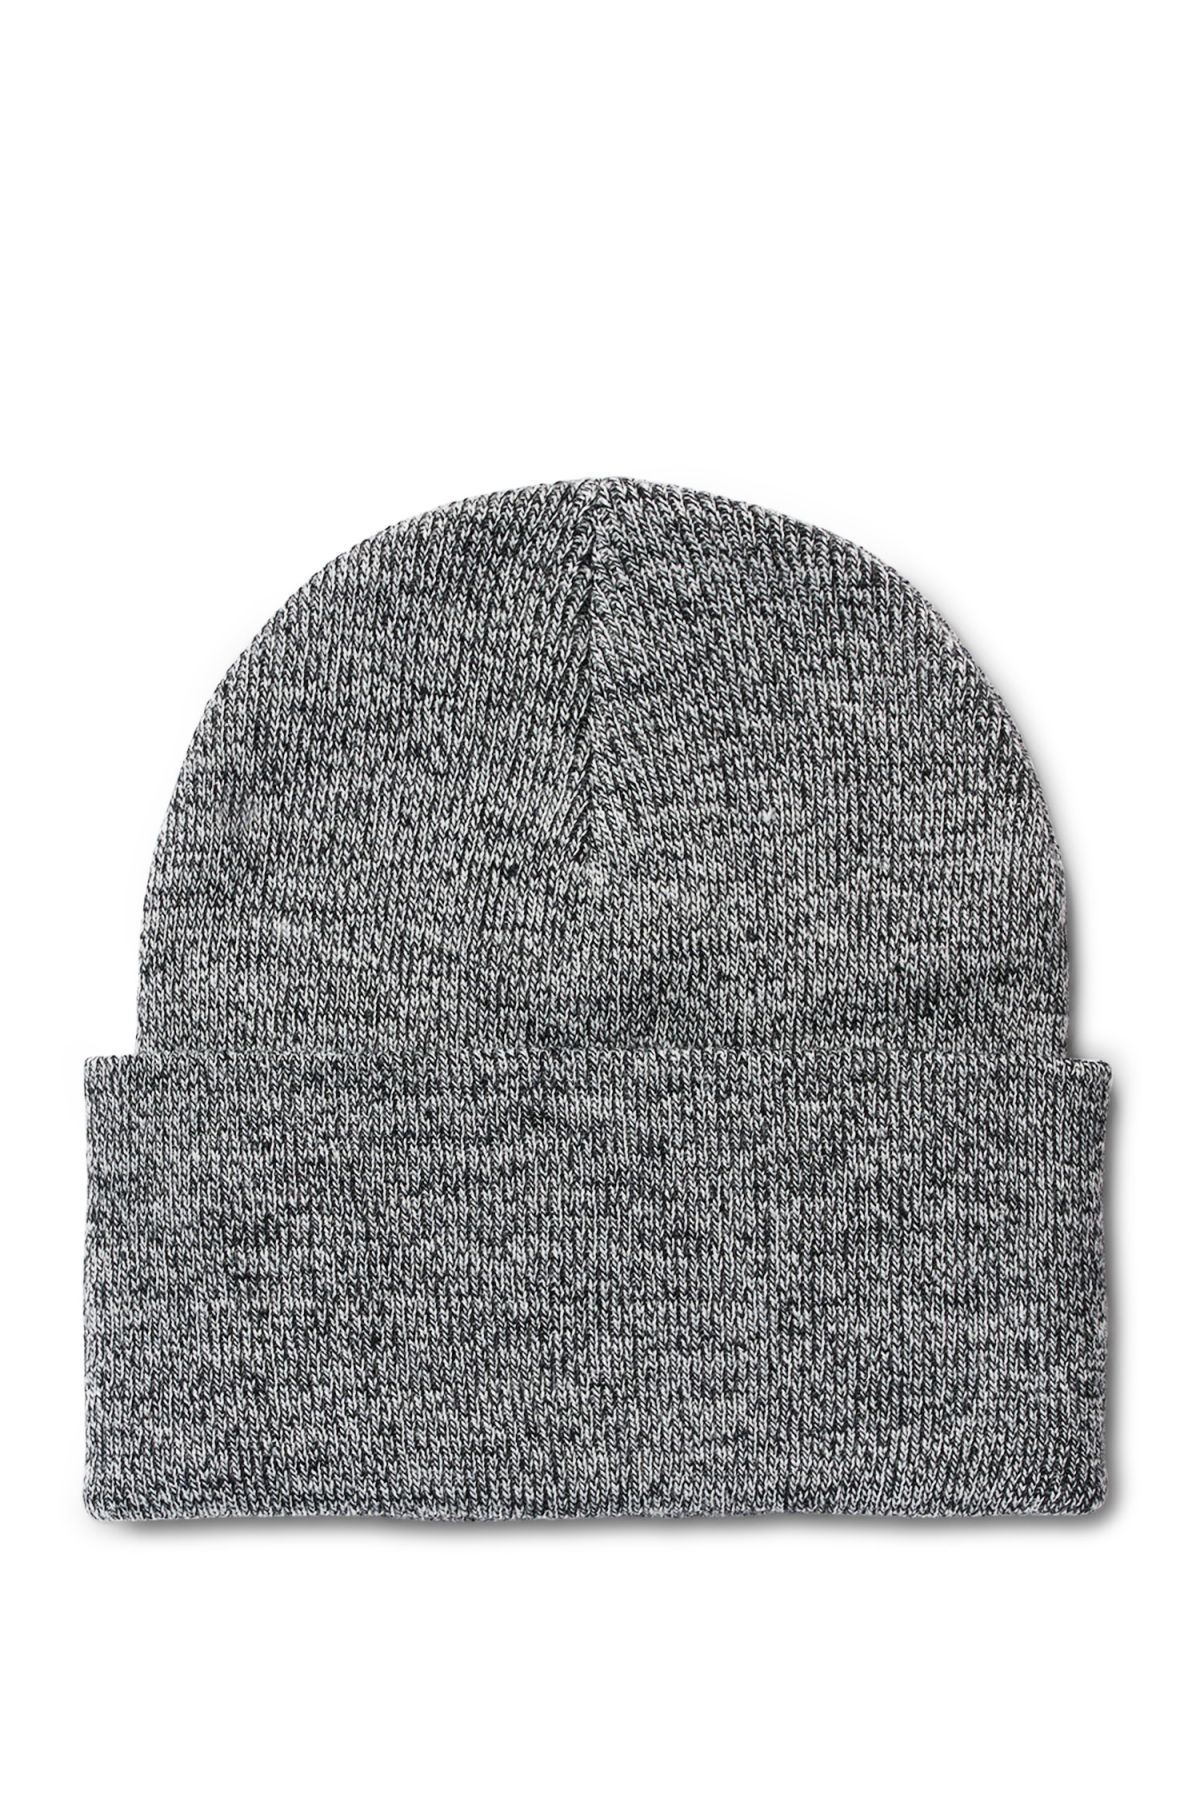 Front image of Weekday salty knit beanie in black